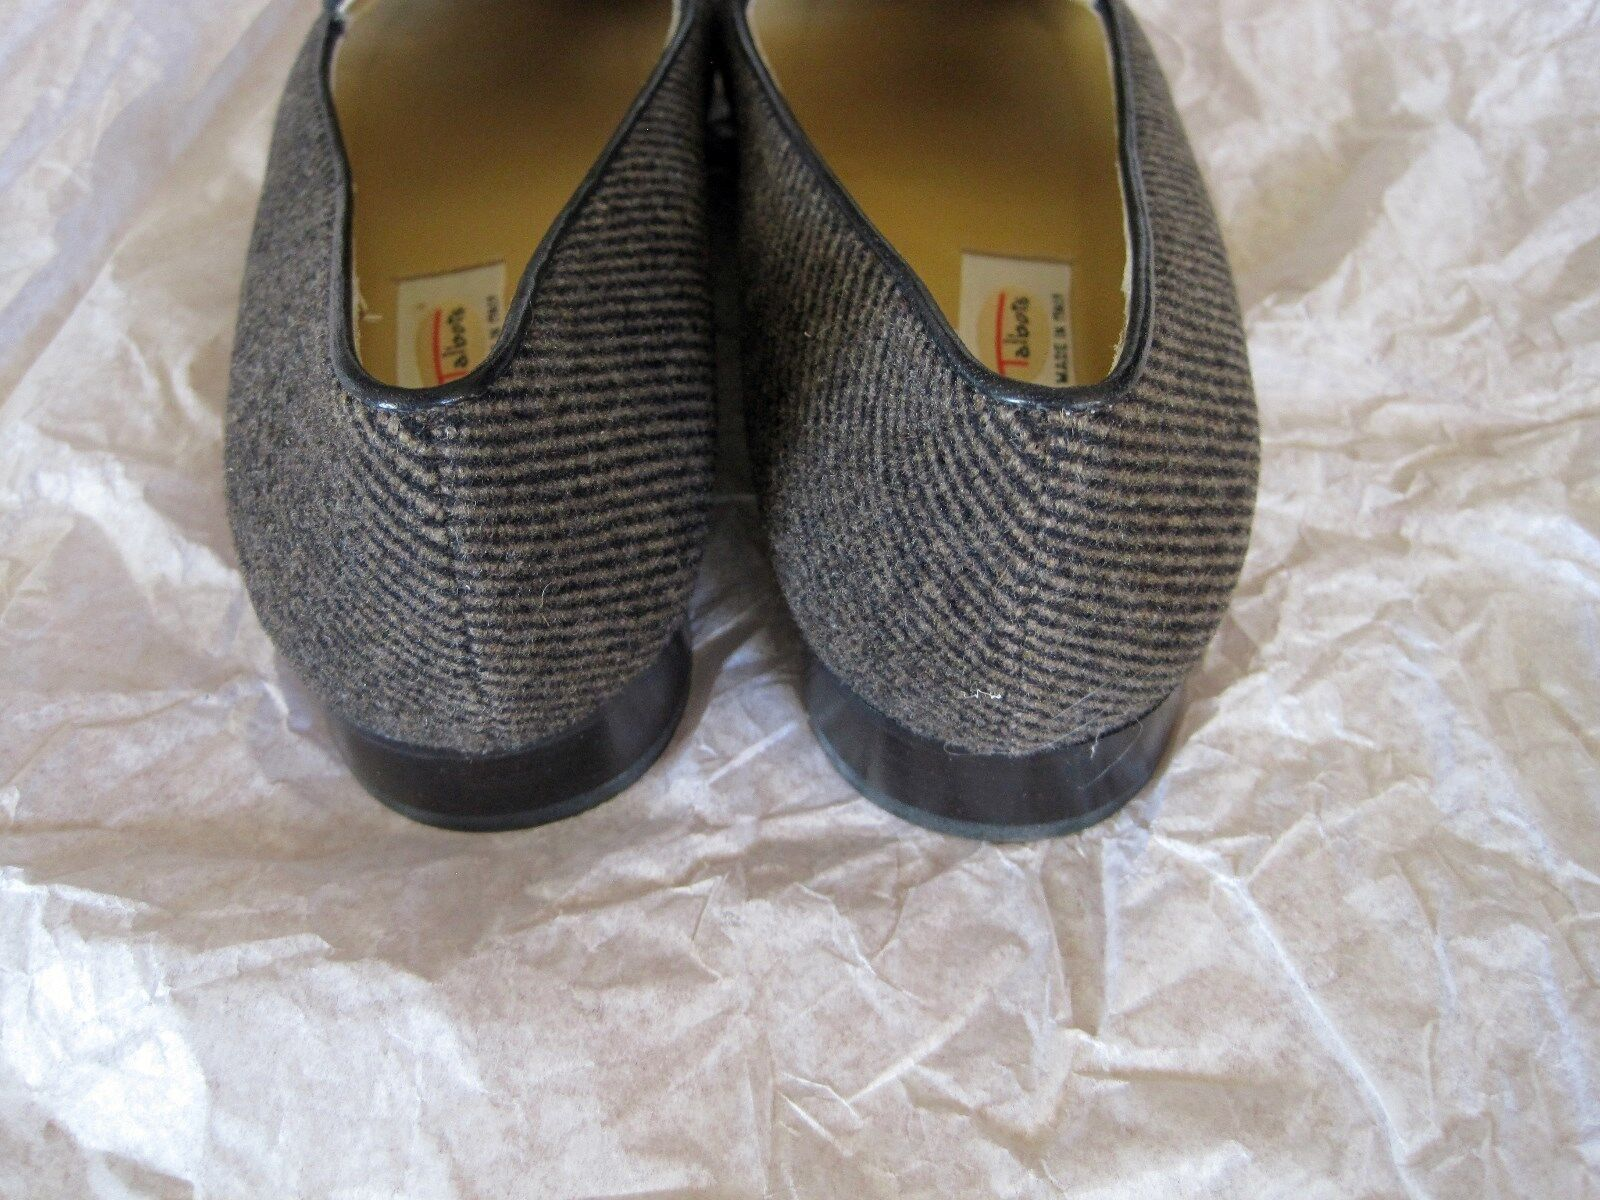 NEW NEW NEW TALBOTS GREY BLACK FABRIC LEATHER LOAFERS 6 ITALY 4d4c9f